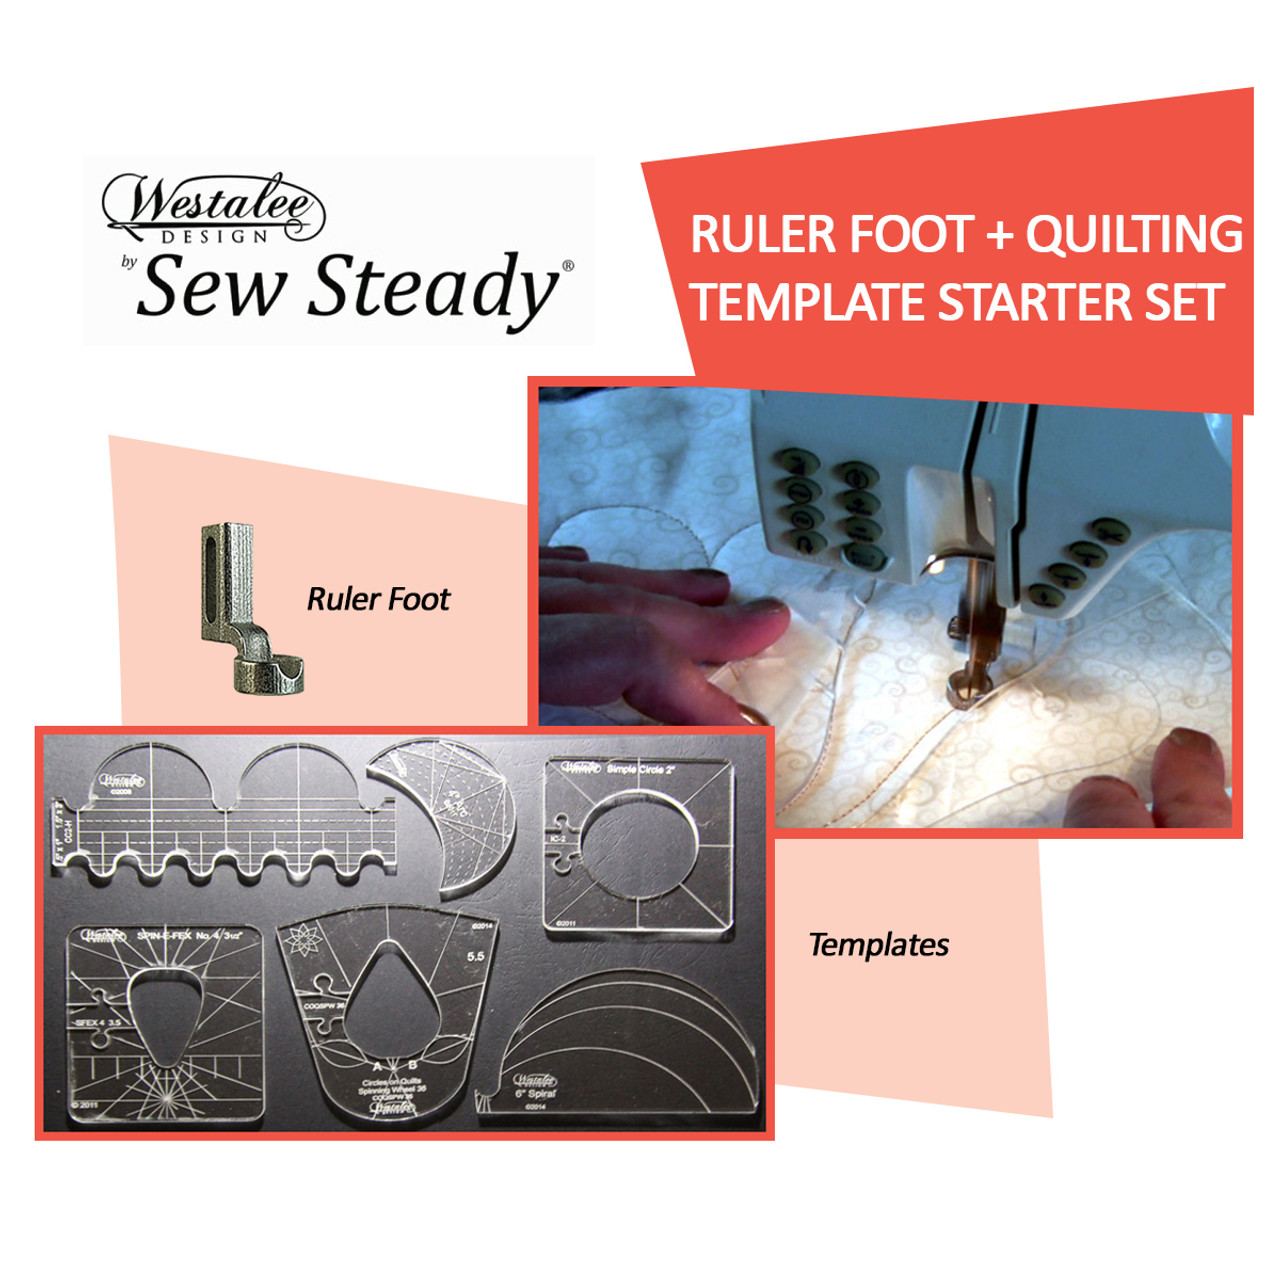 Sew Steady Westalee Quilting foot & Template Starter Package USD 130.00 - FREE SHIPPING!